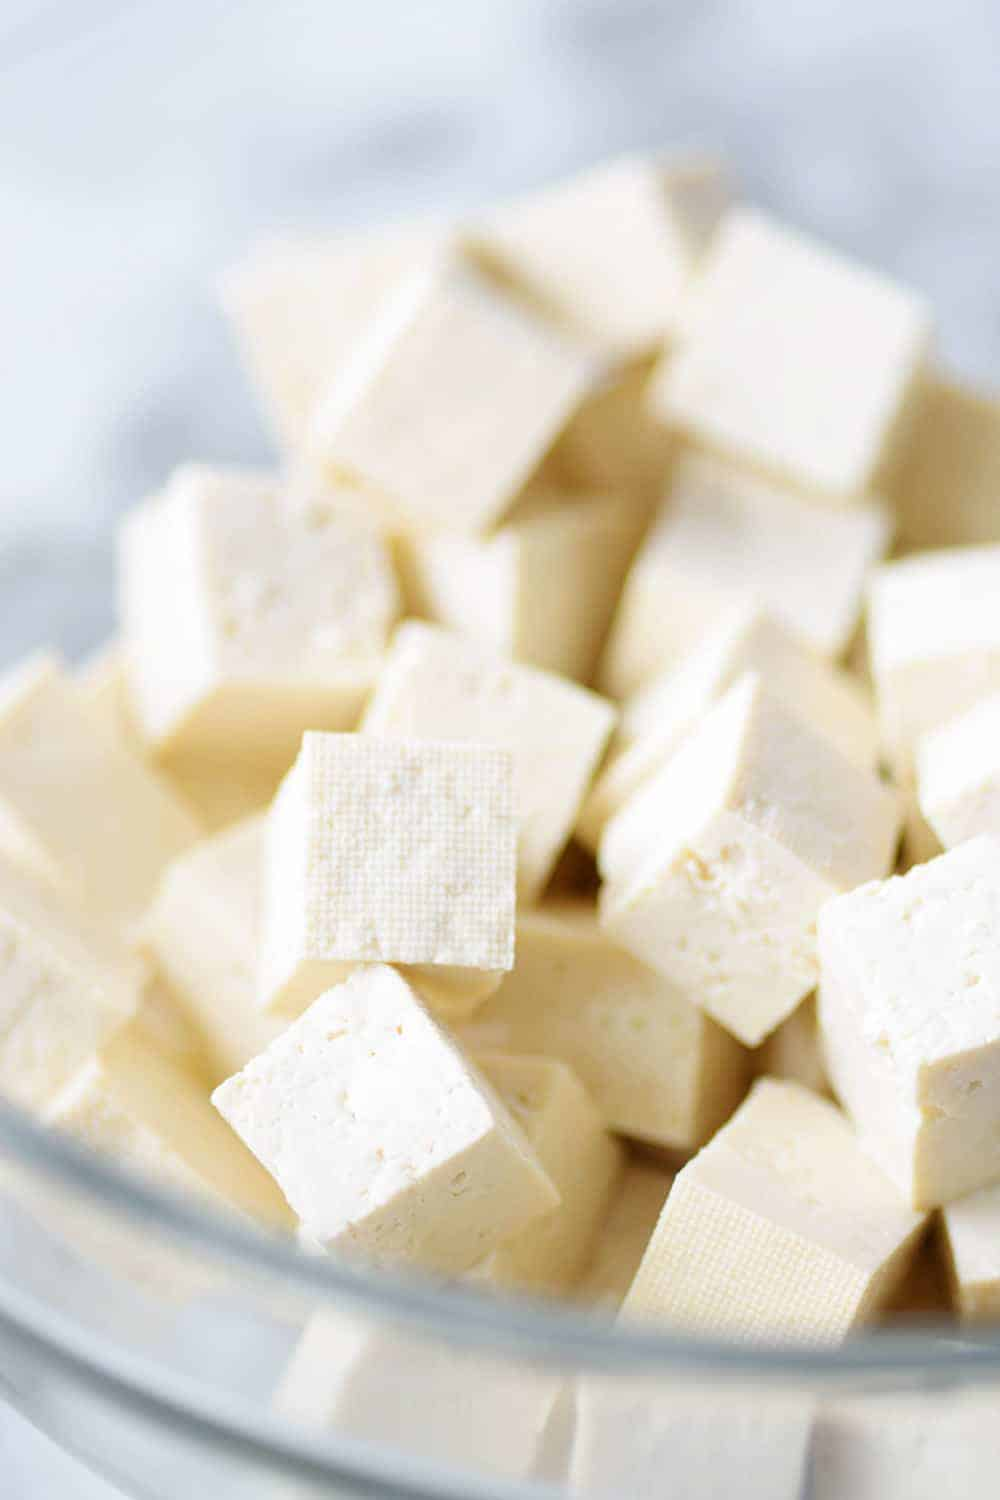 cubes of tofu in a bowl